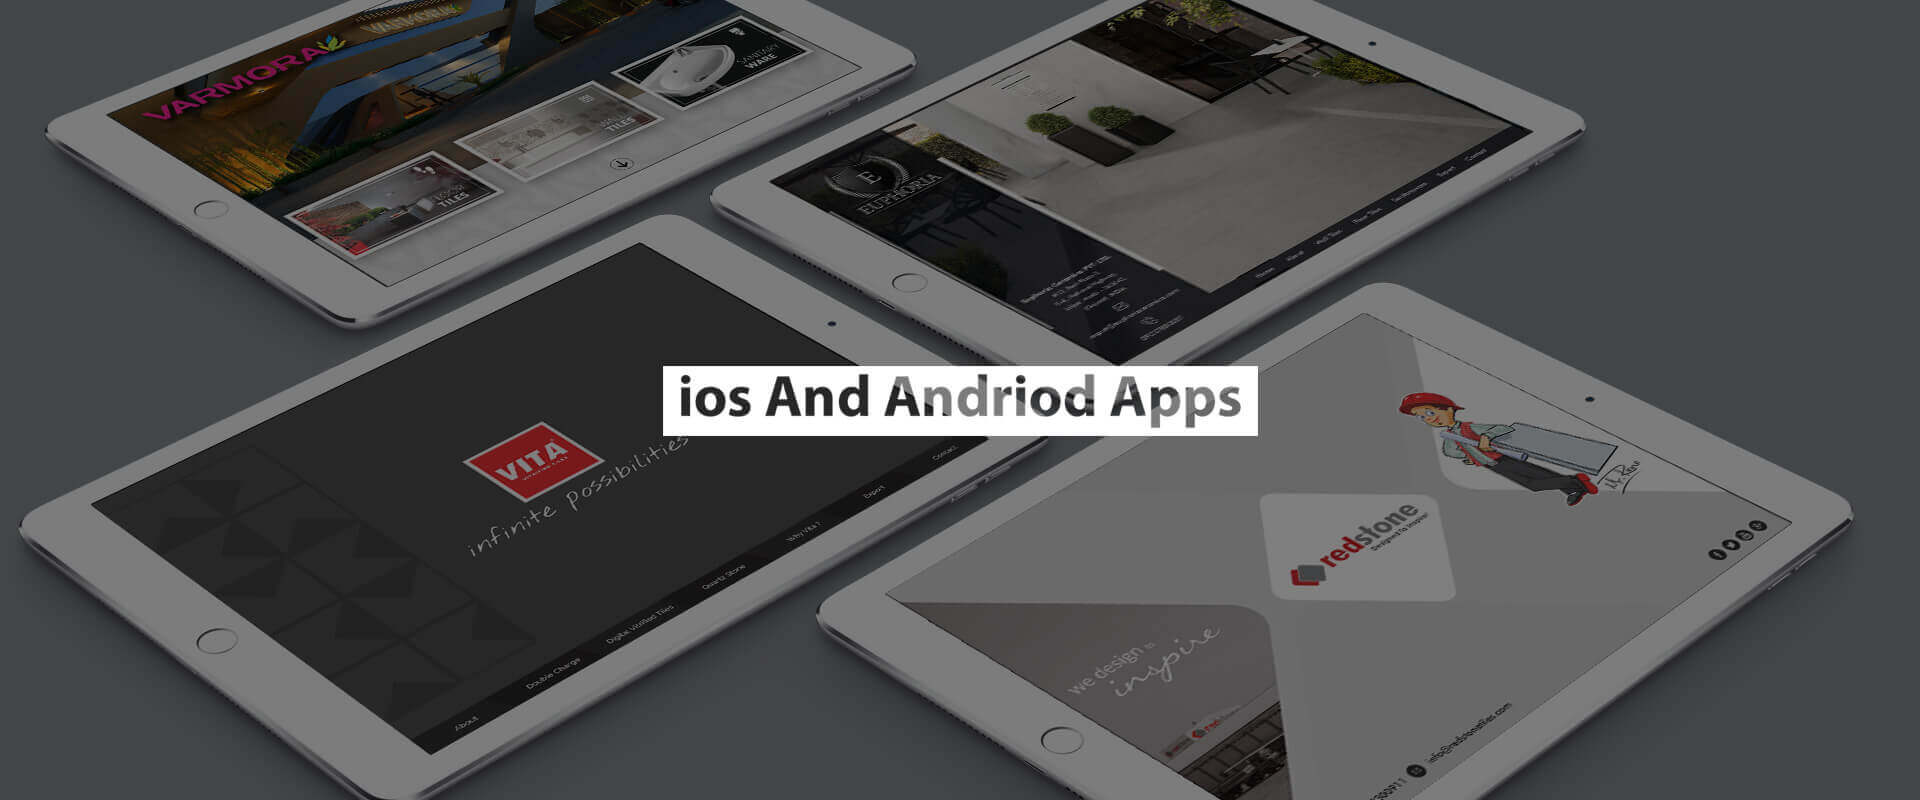 ios And Andriod Apps